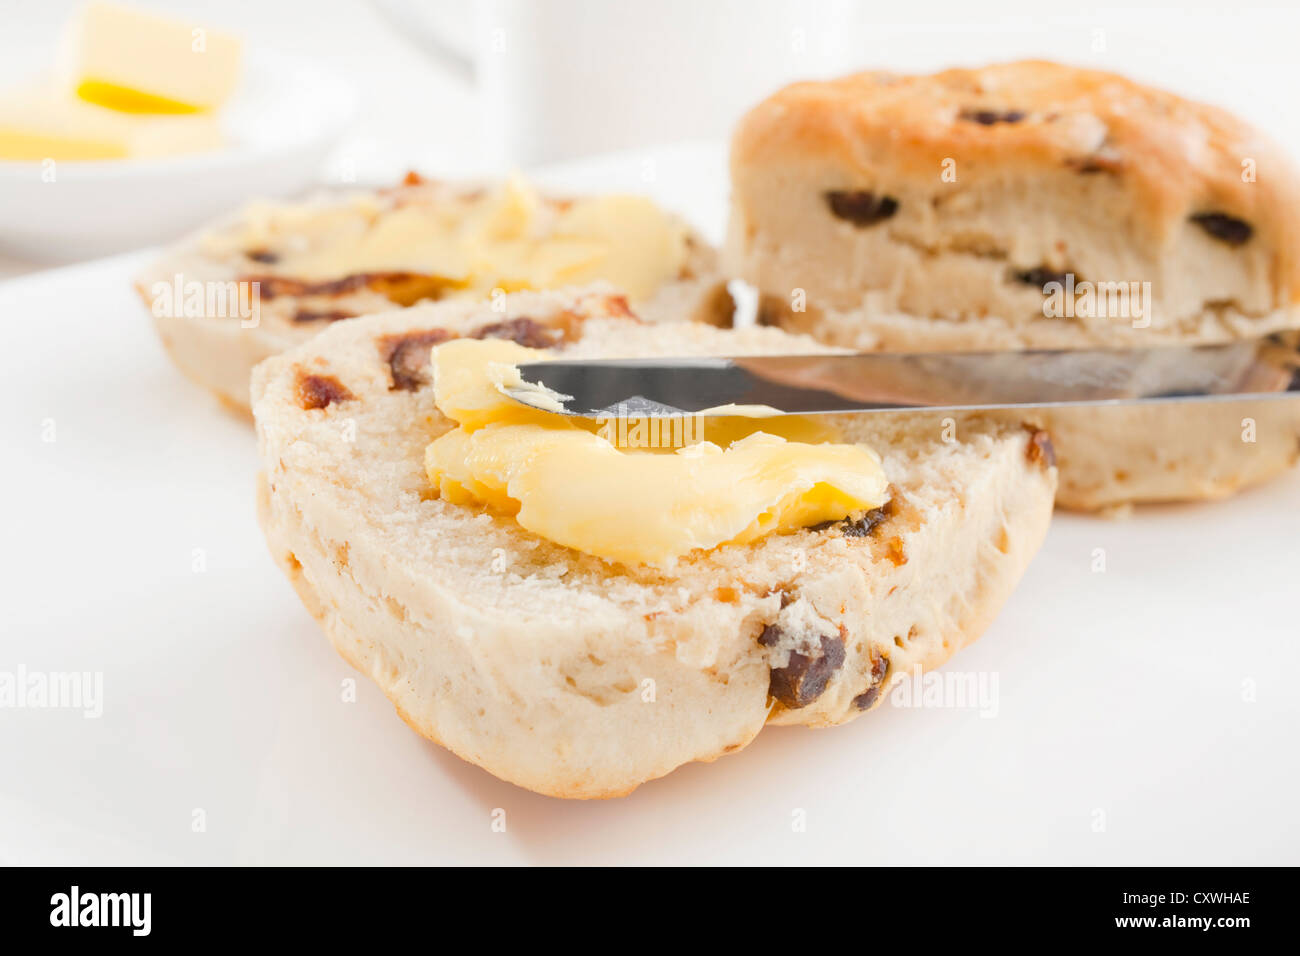 Two date scones on a white plate with butter. - Stock Image